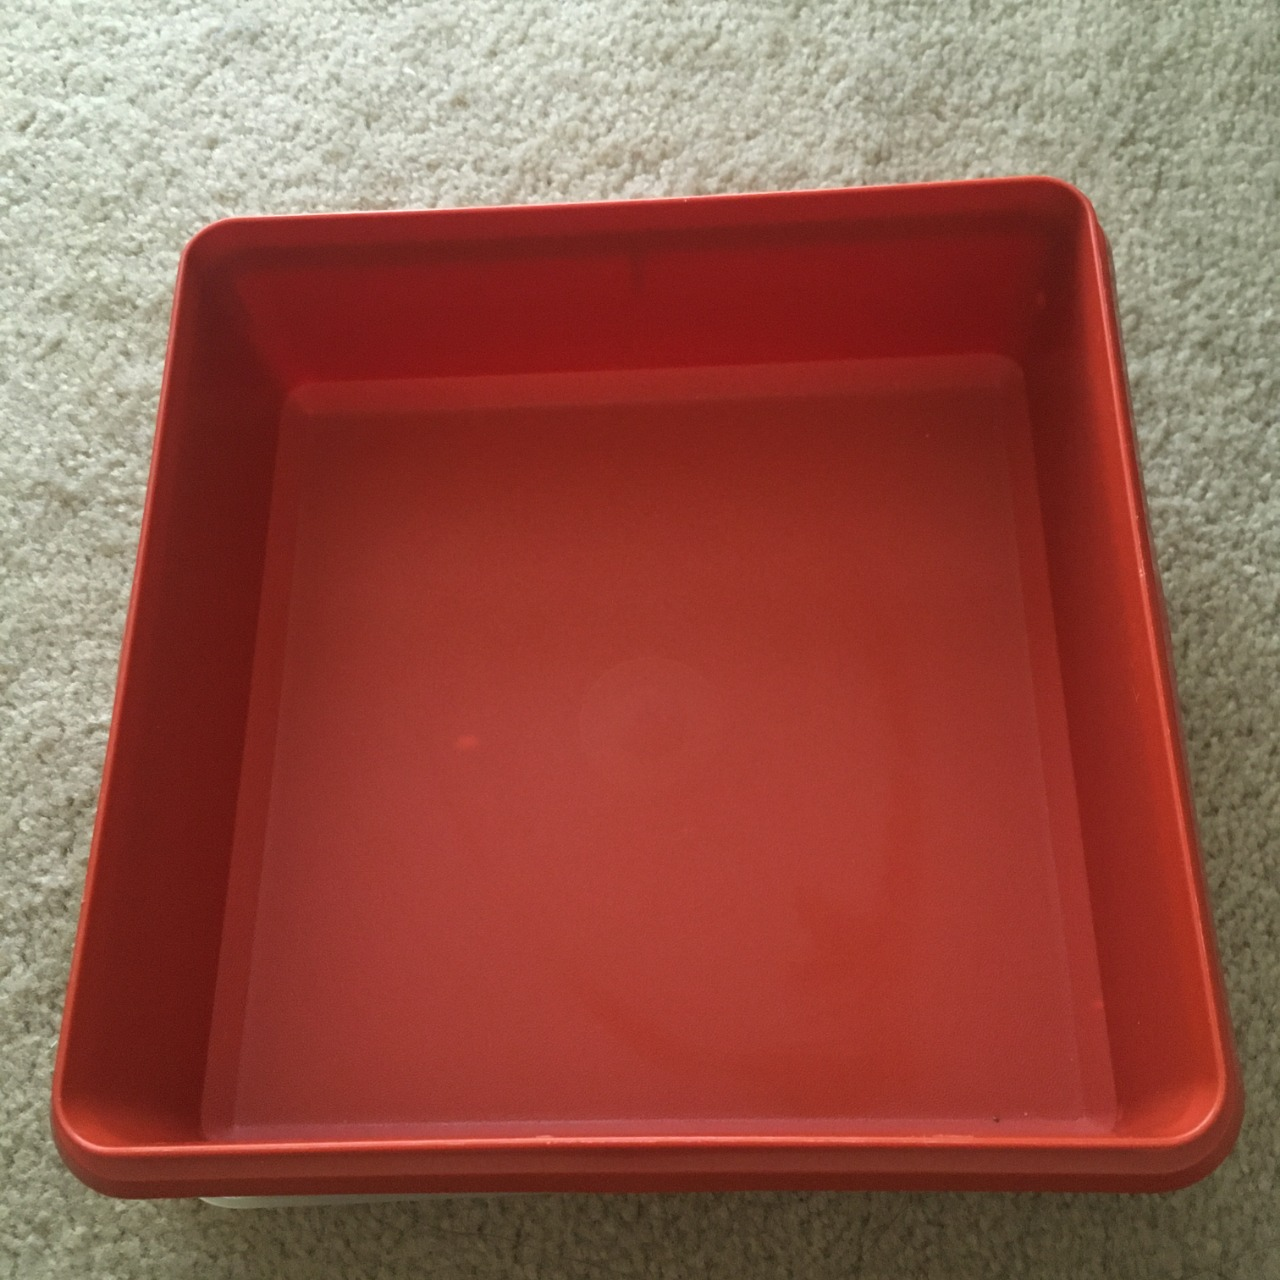 Tupperware Square Storage Container Red/Clear